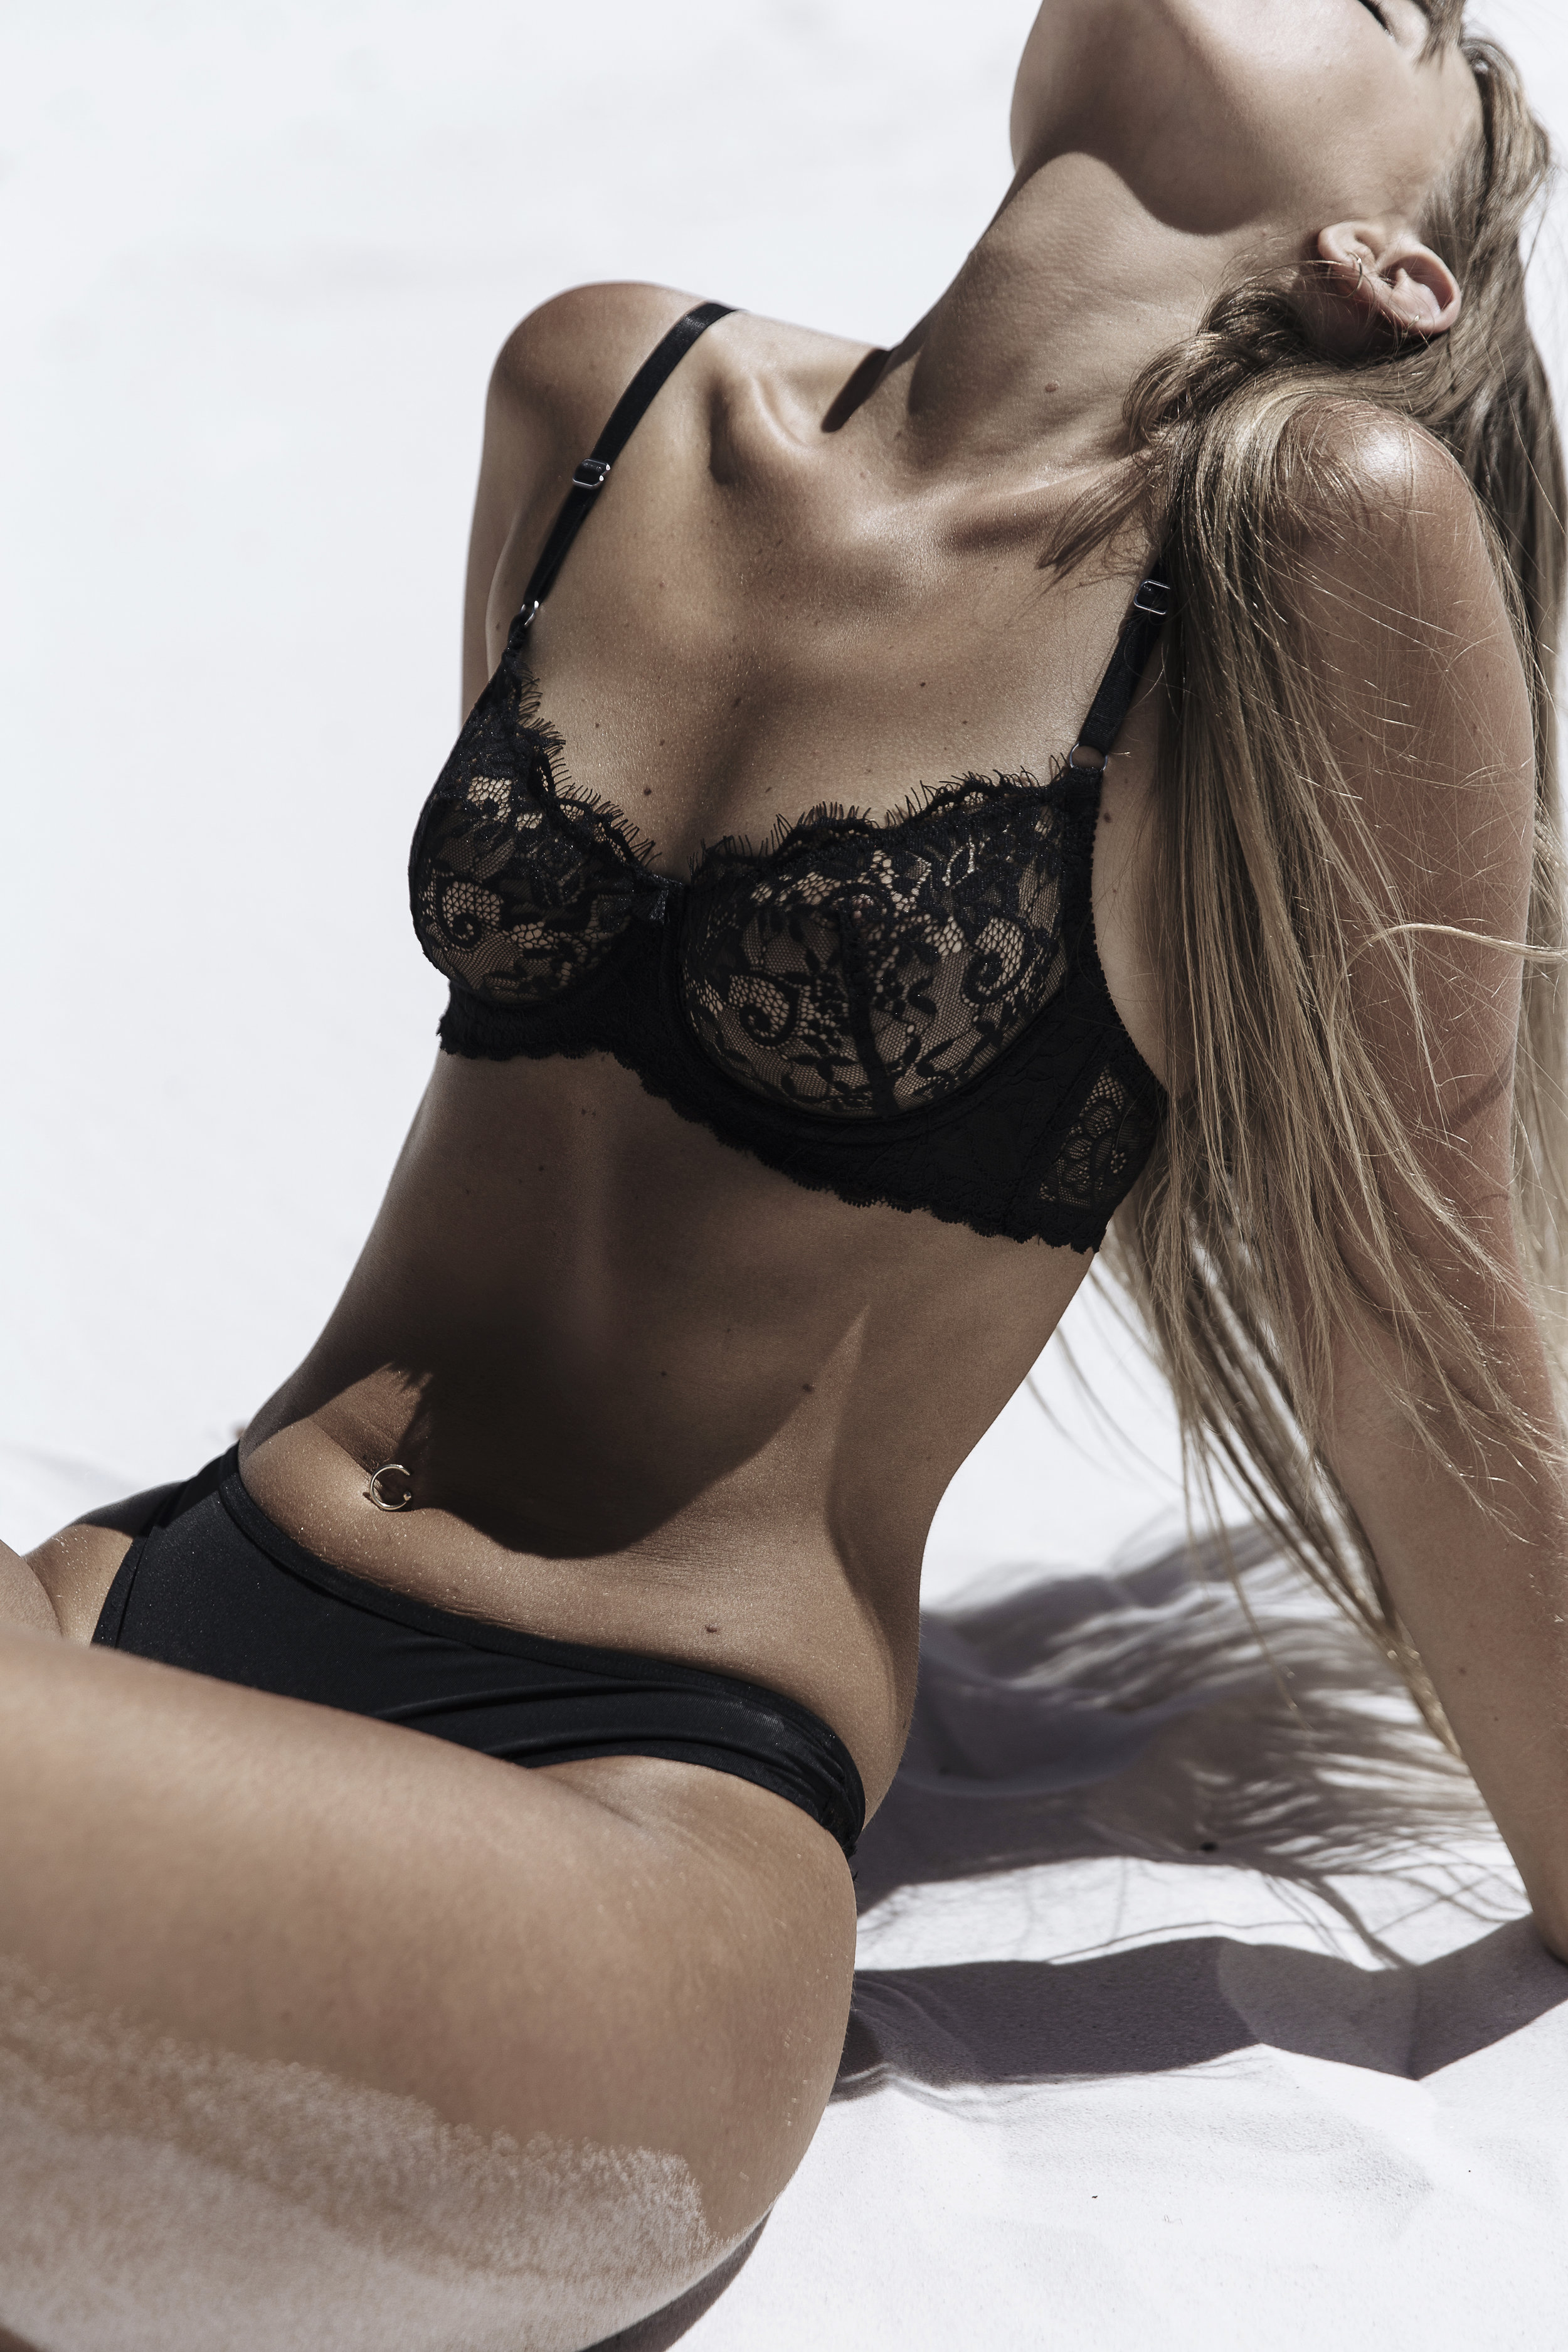 LACE CUP UNDERWIRE KAT THE LABEL.jpg